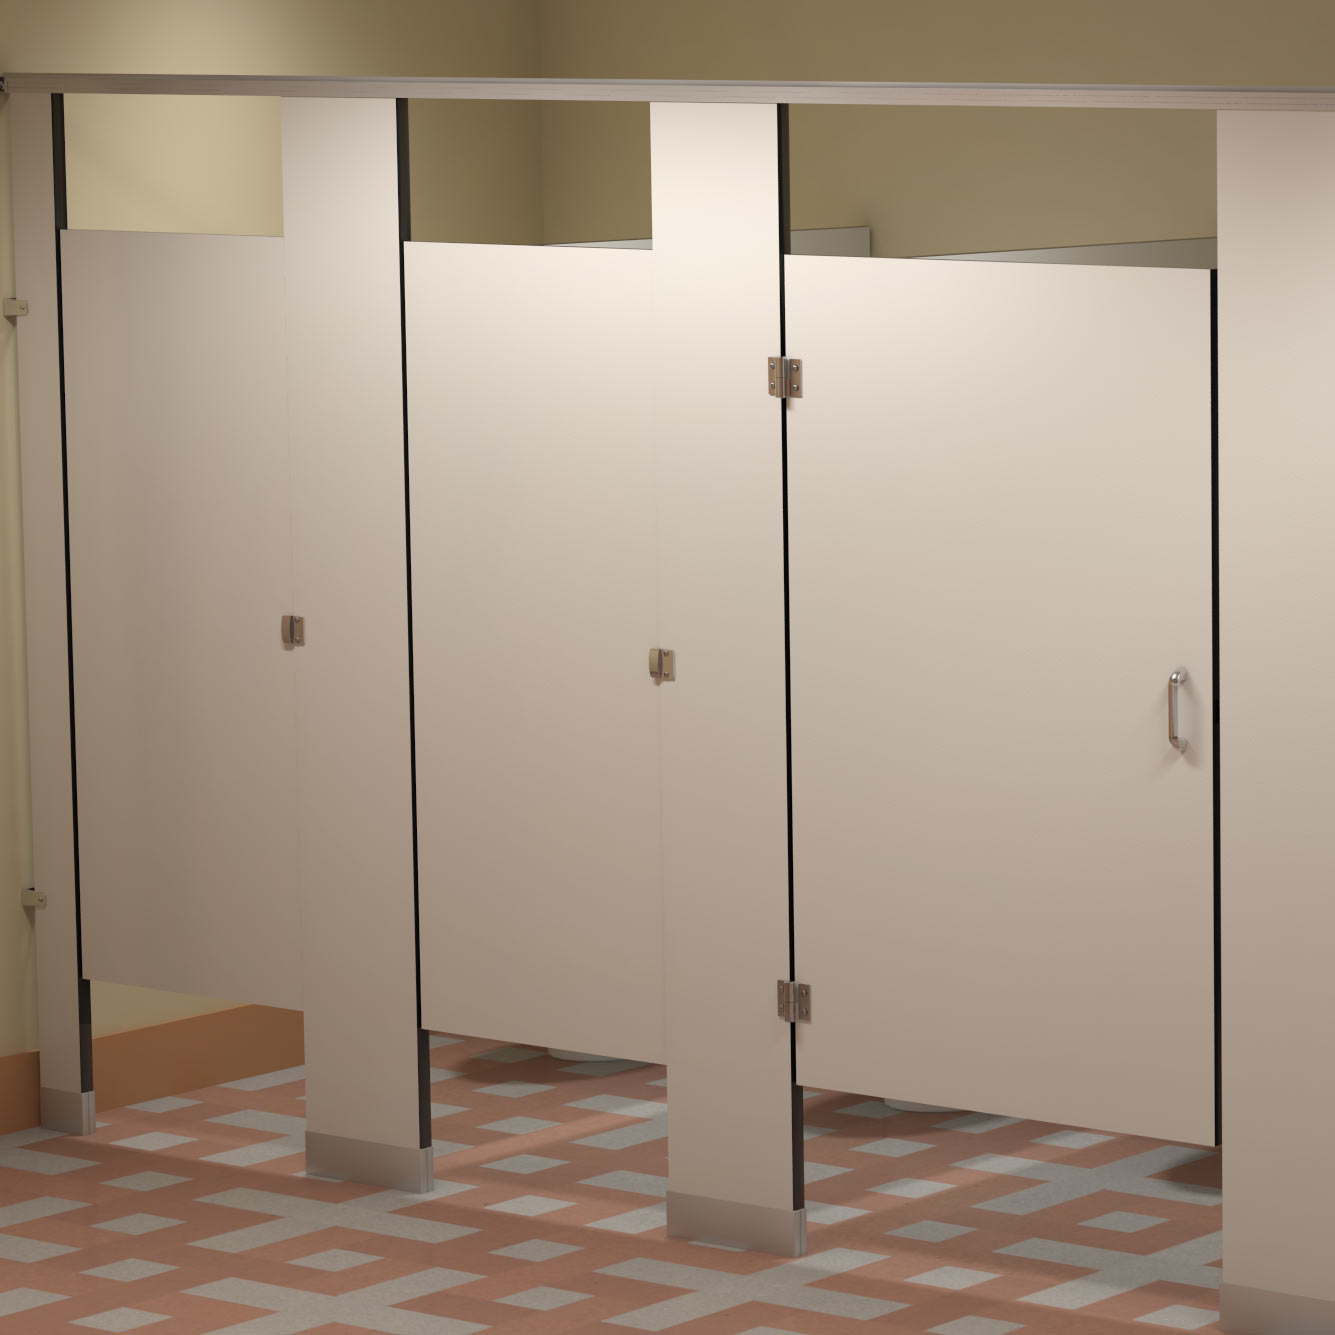 Bathroom Partition how bathrooms affect more than just value Solid Phenolic Core Partitions